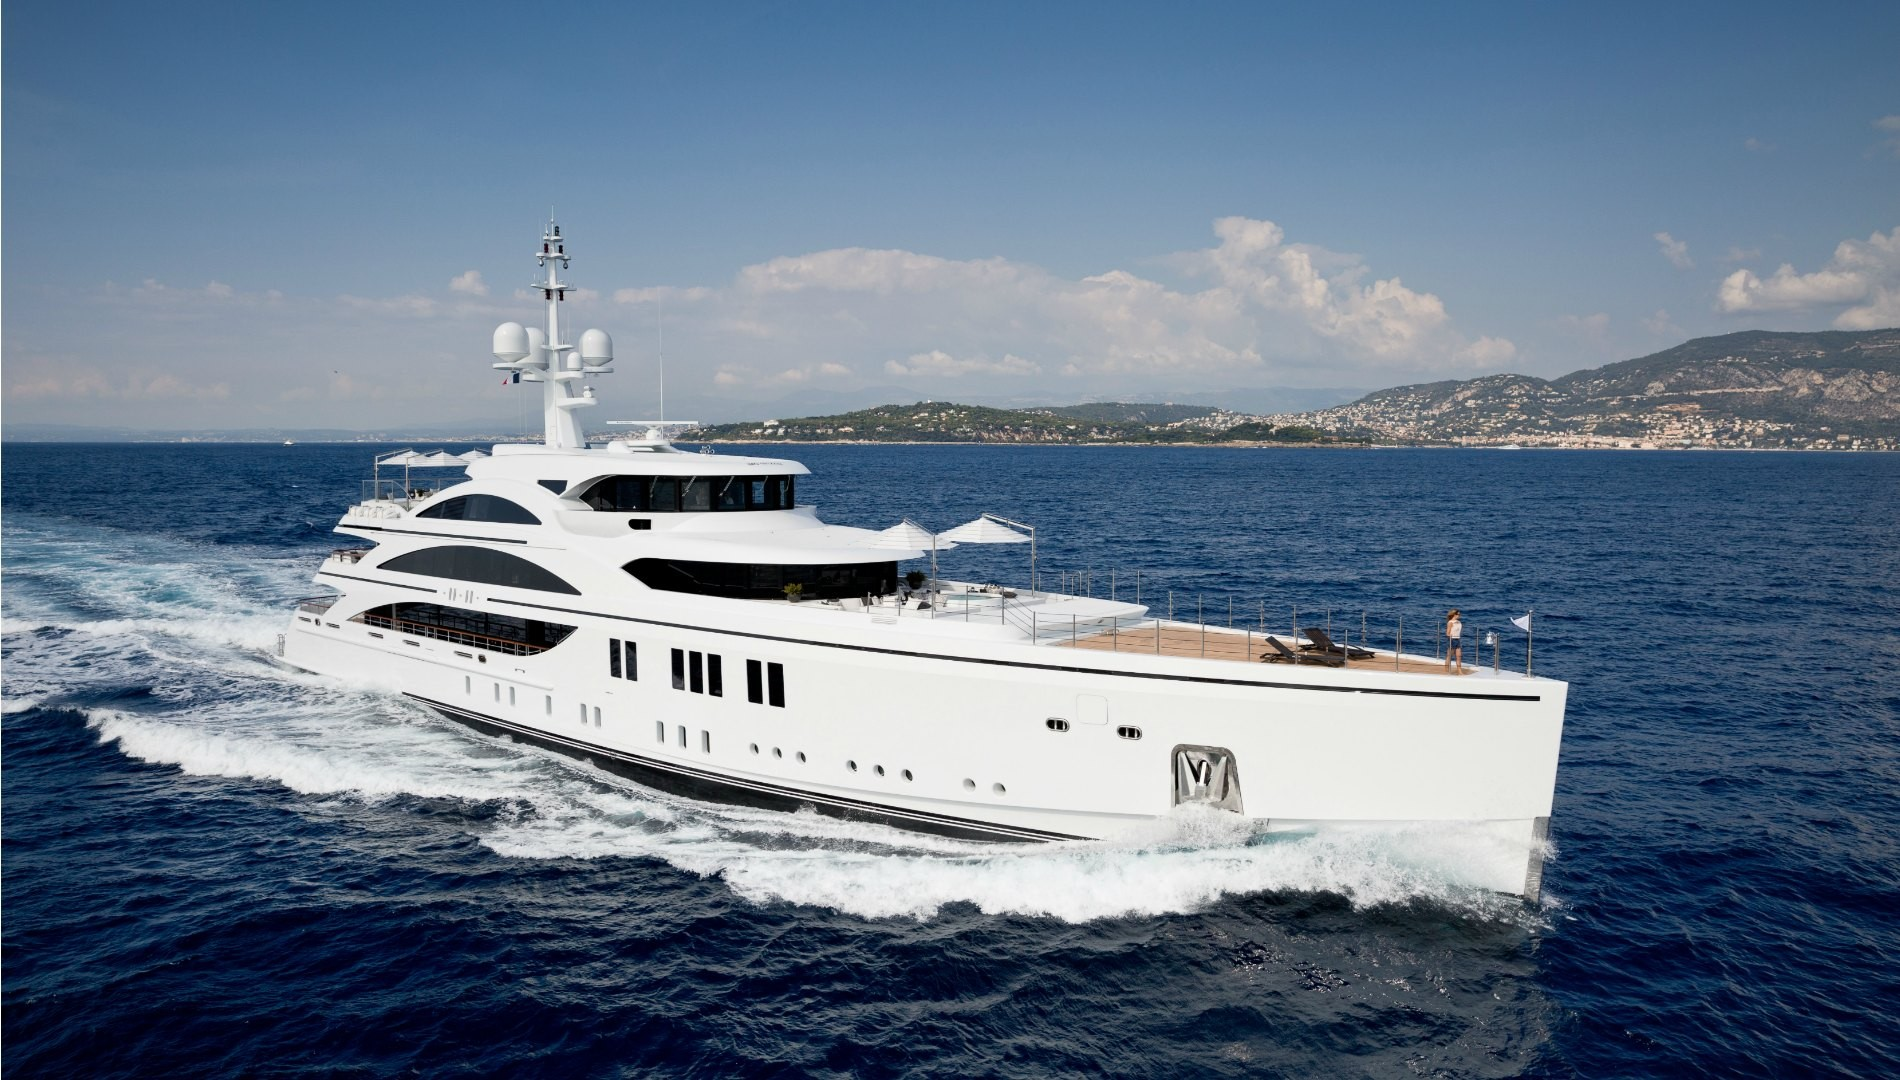 An aerial of a white superyacht